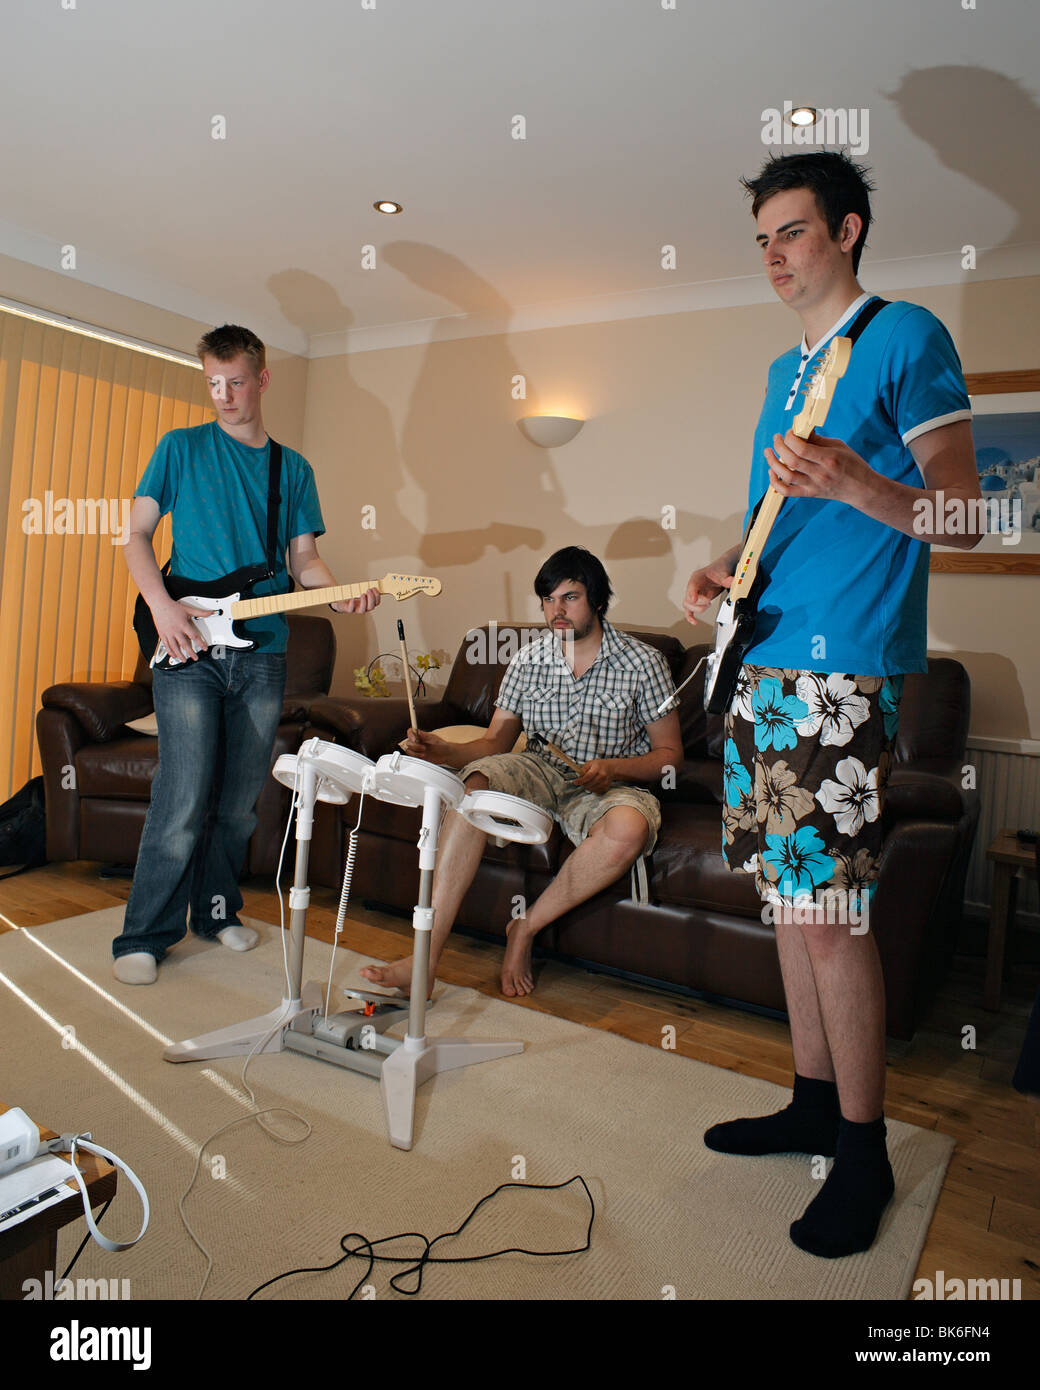 Teenagers playing Rock Band computer game. - Stock Image